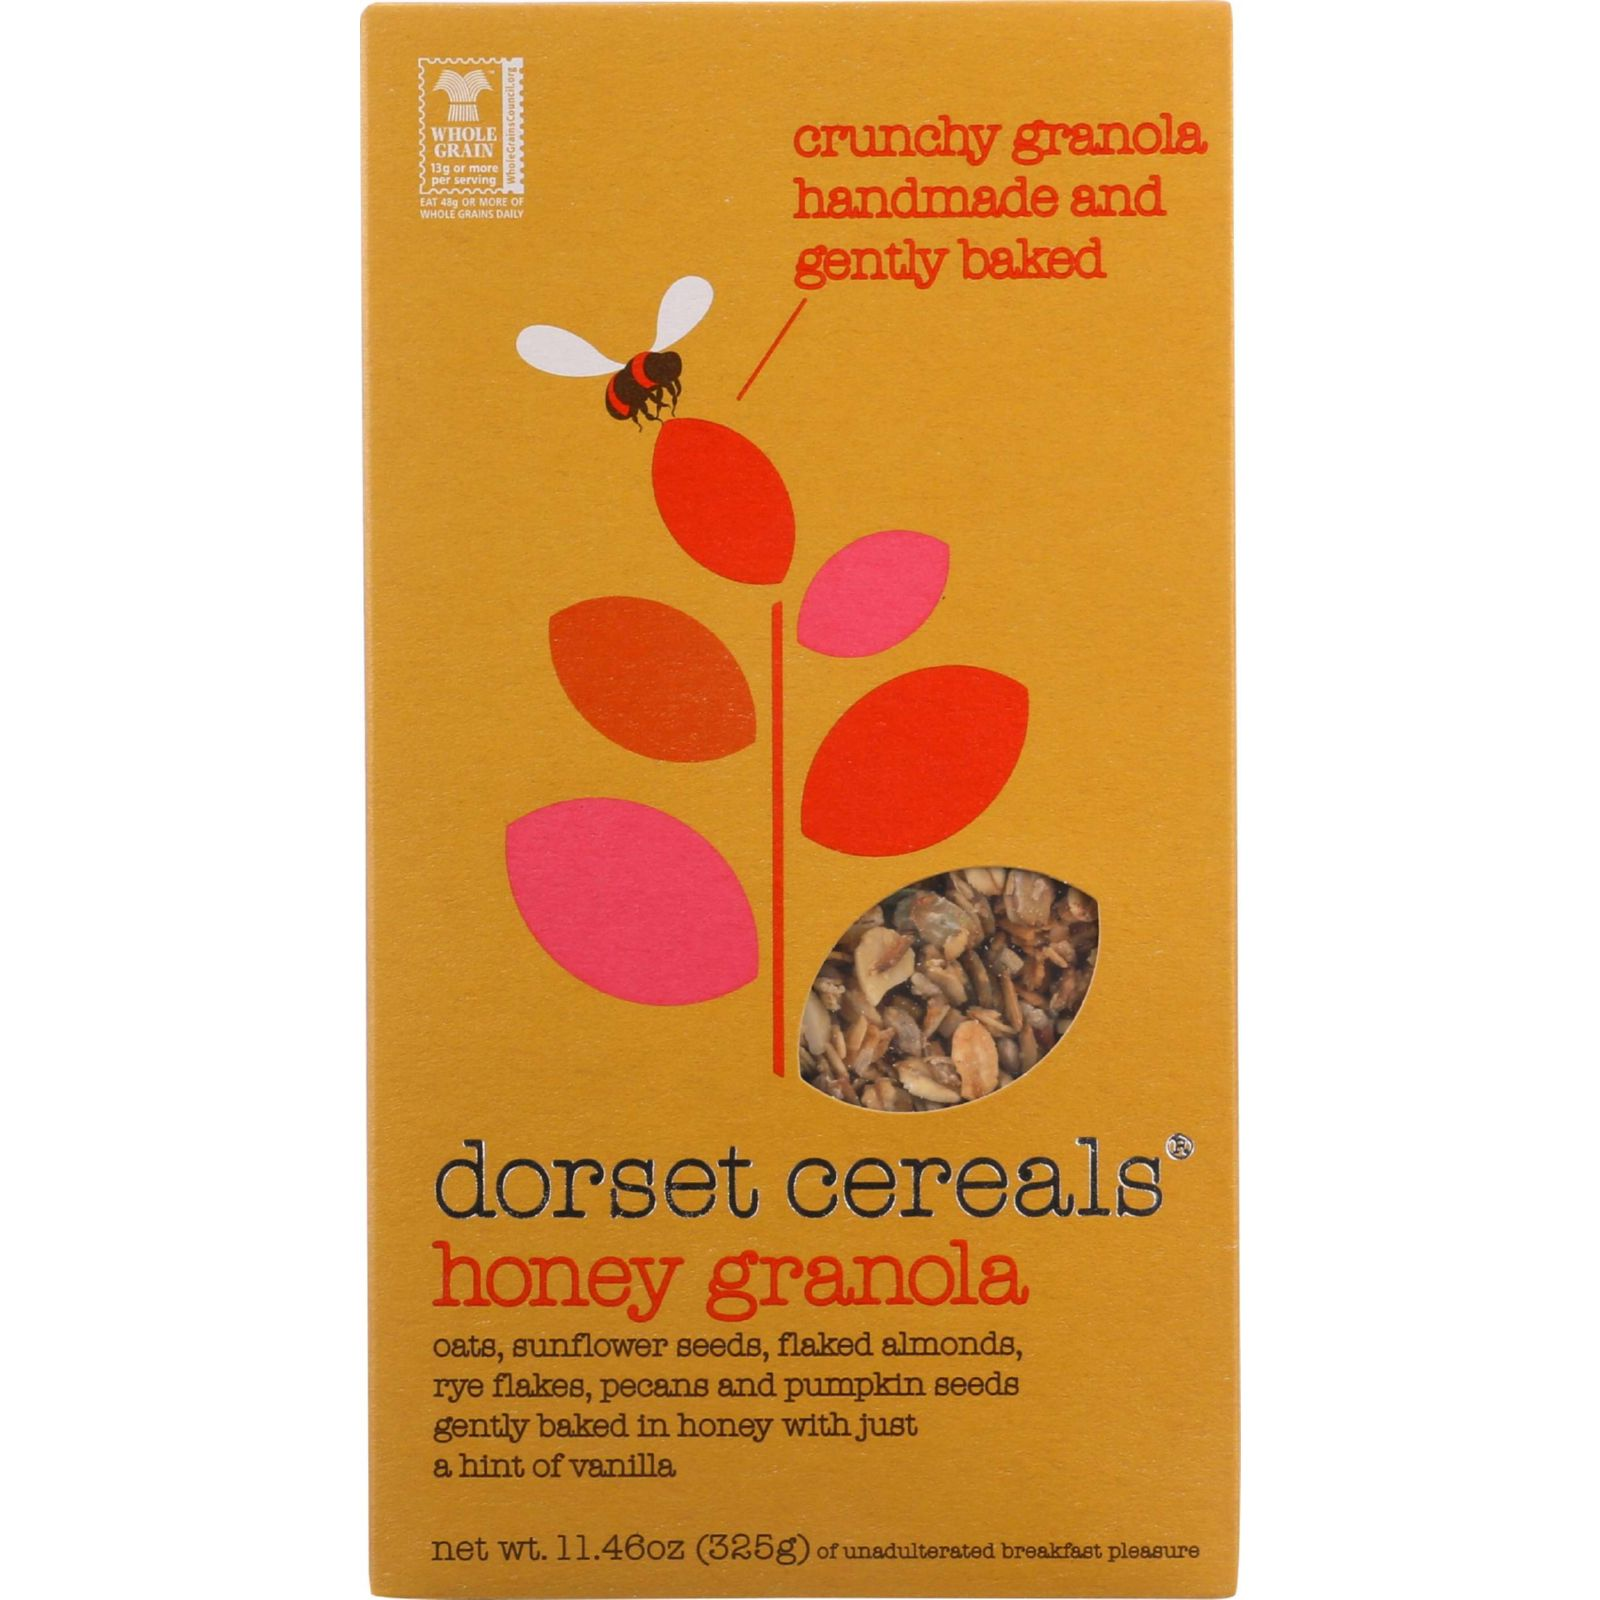 Dorset Cereal Cereal - Honey Granola - 11.46 oz - case of 5